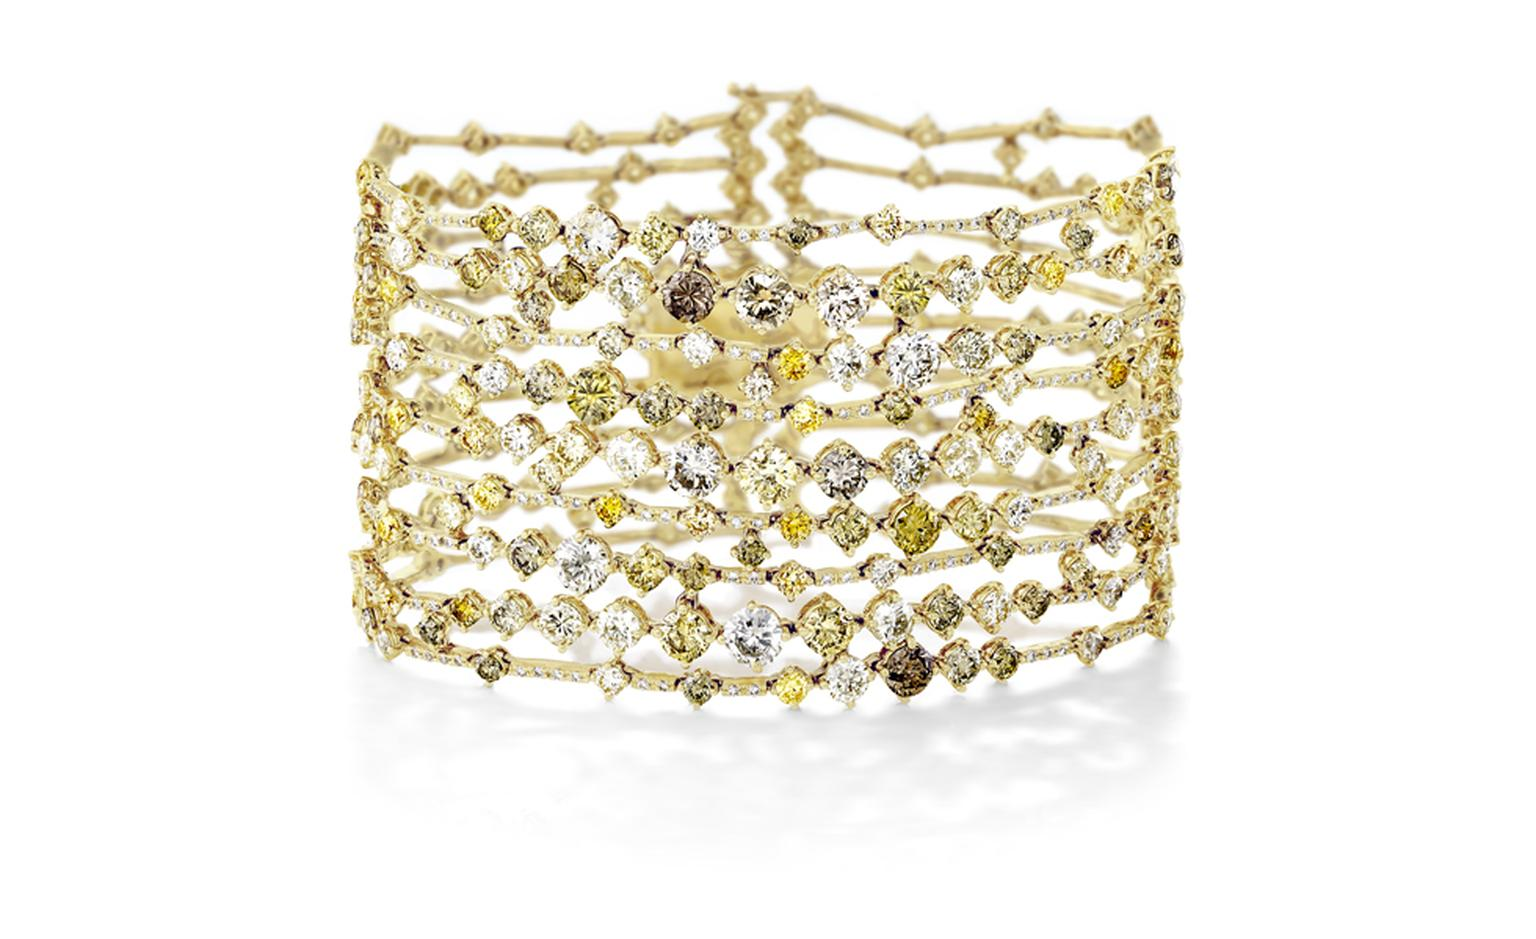 DE BEERS, Arpeggia collection, nine-lines bracelet in yellow gold. POA